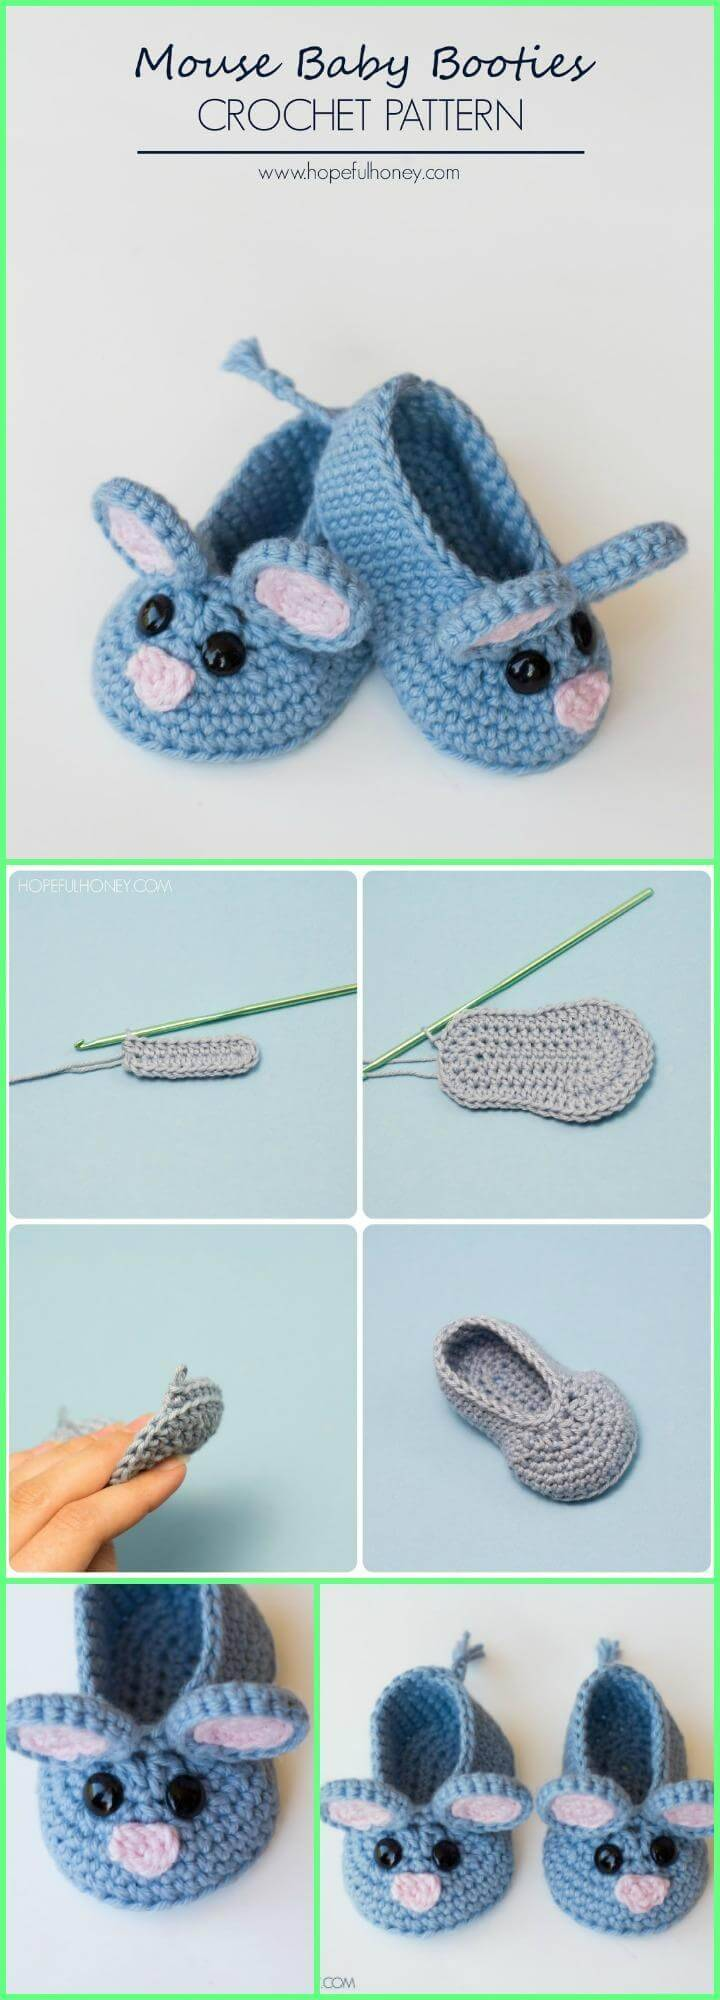 Crochet Baby Booties - Top 40 Free Crochet Patterns - DIY & Crafts